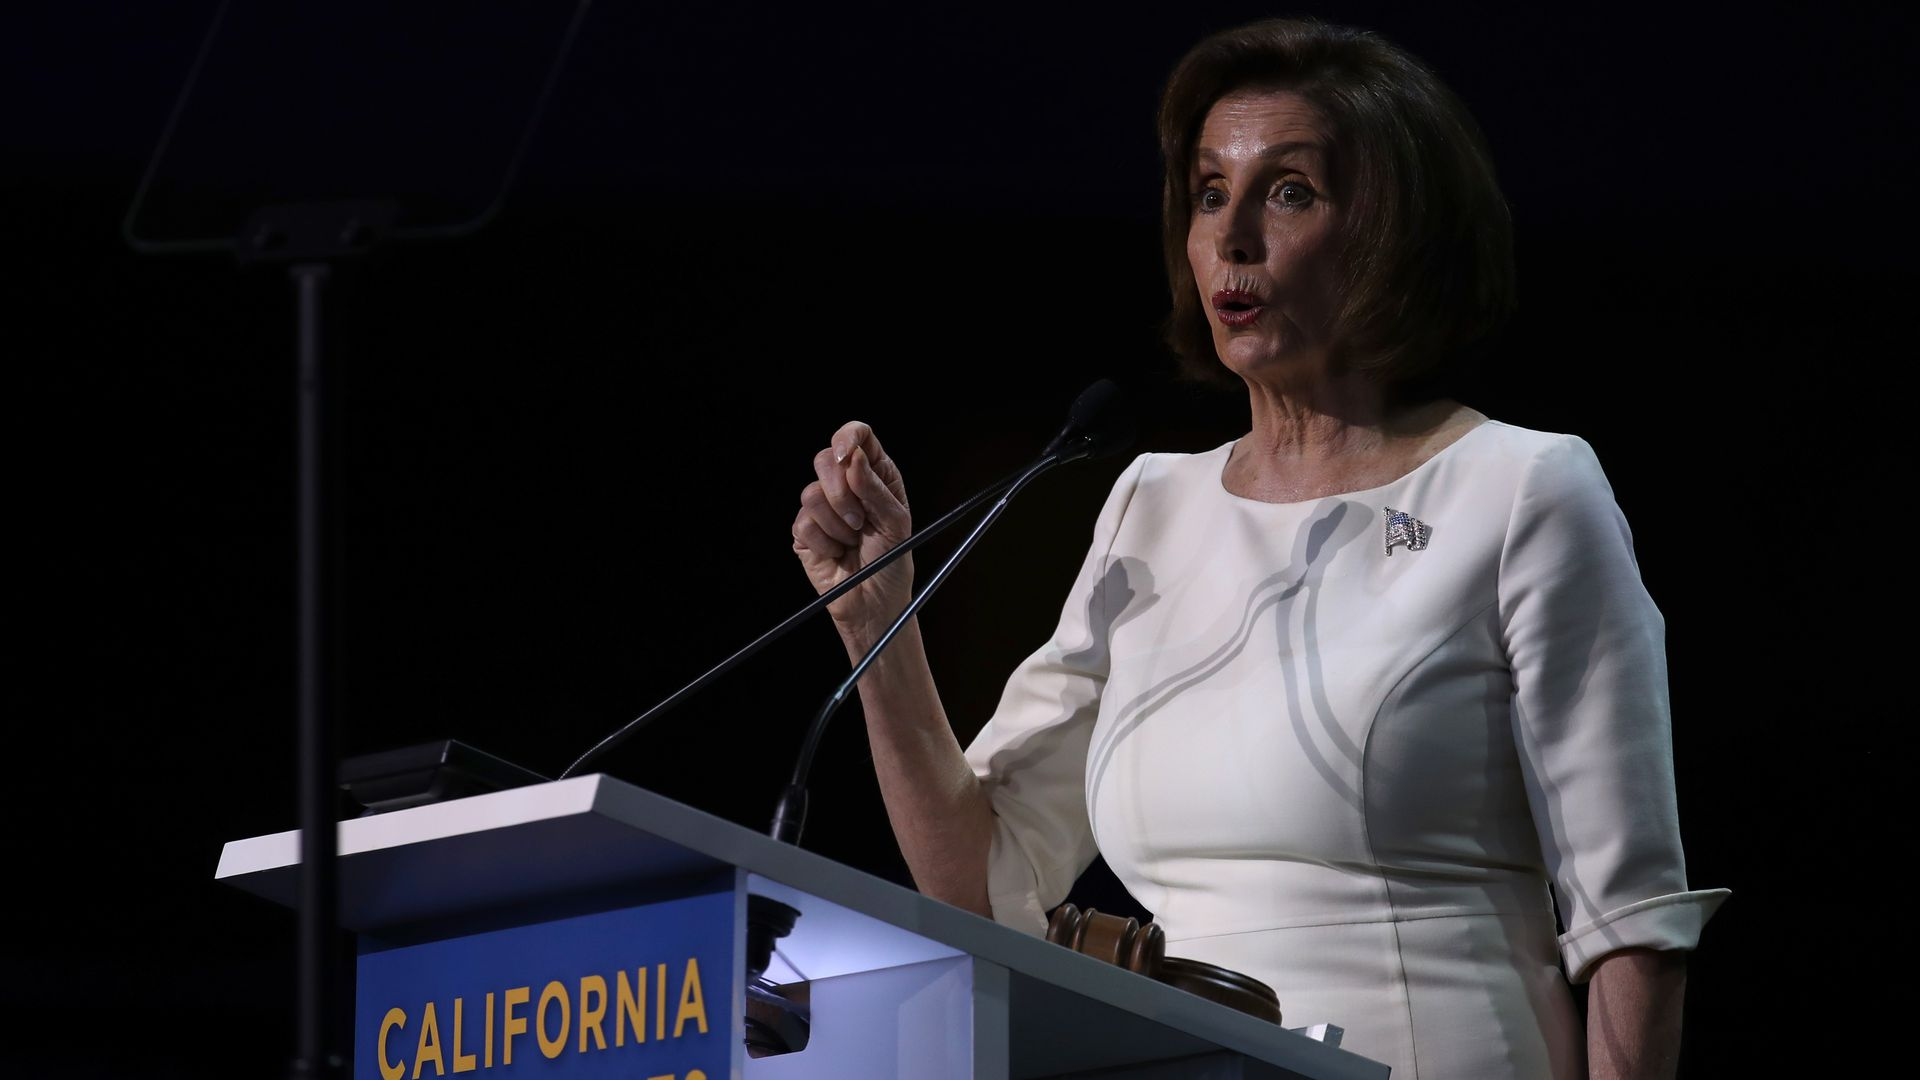 House Speaker Nancy Pelosi (D-CA) speaks during the California Democrats 2019 State Convention at the Moscone Center on June 01, 2019 in San Francisco, California.